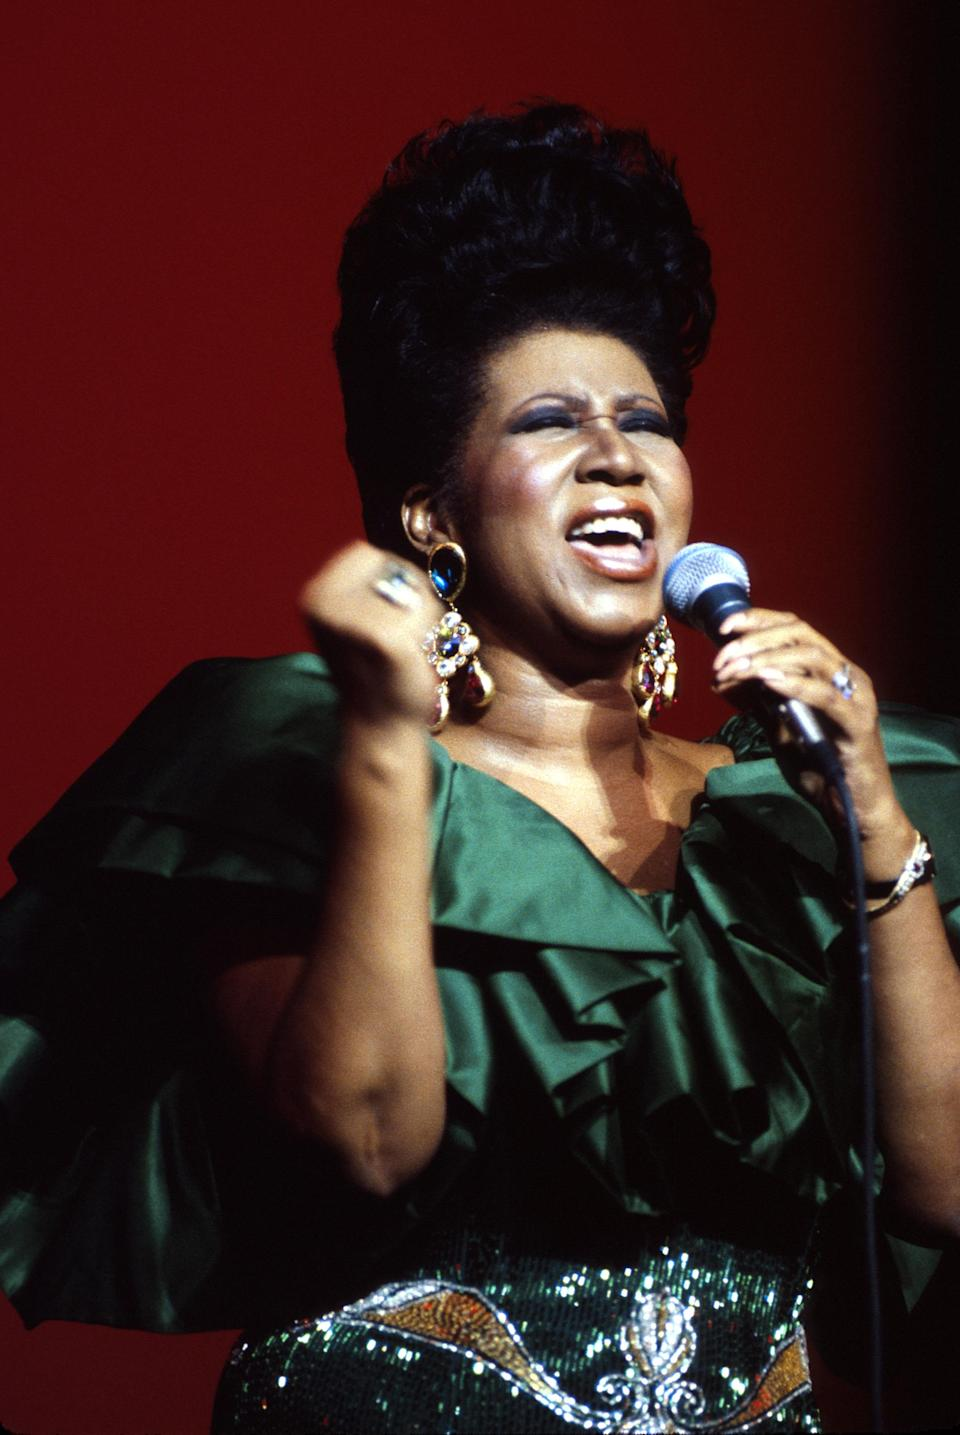 <p>Aretha Franklin performs onstage in 1986 wearing an extravagant green ruffle and metallic gown with chandalier jewel earrings and a larger-than-life pompadour. (Photo by Al Pereira/Michael Ochs Archives/Getty Images) </p>